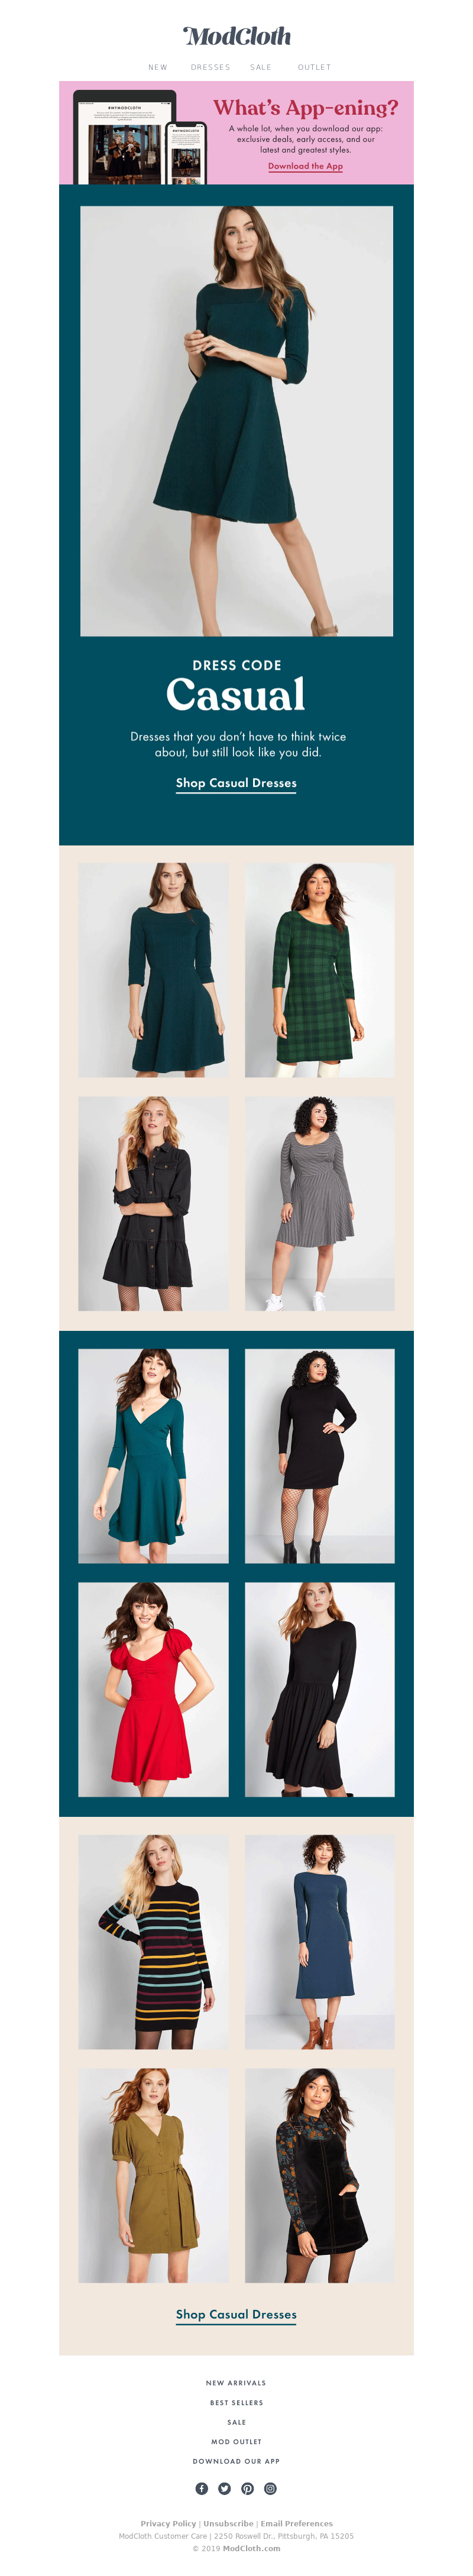 Fashion brand email idea from Modcloth